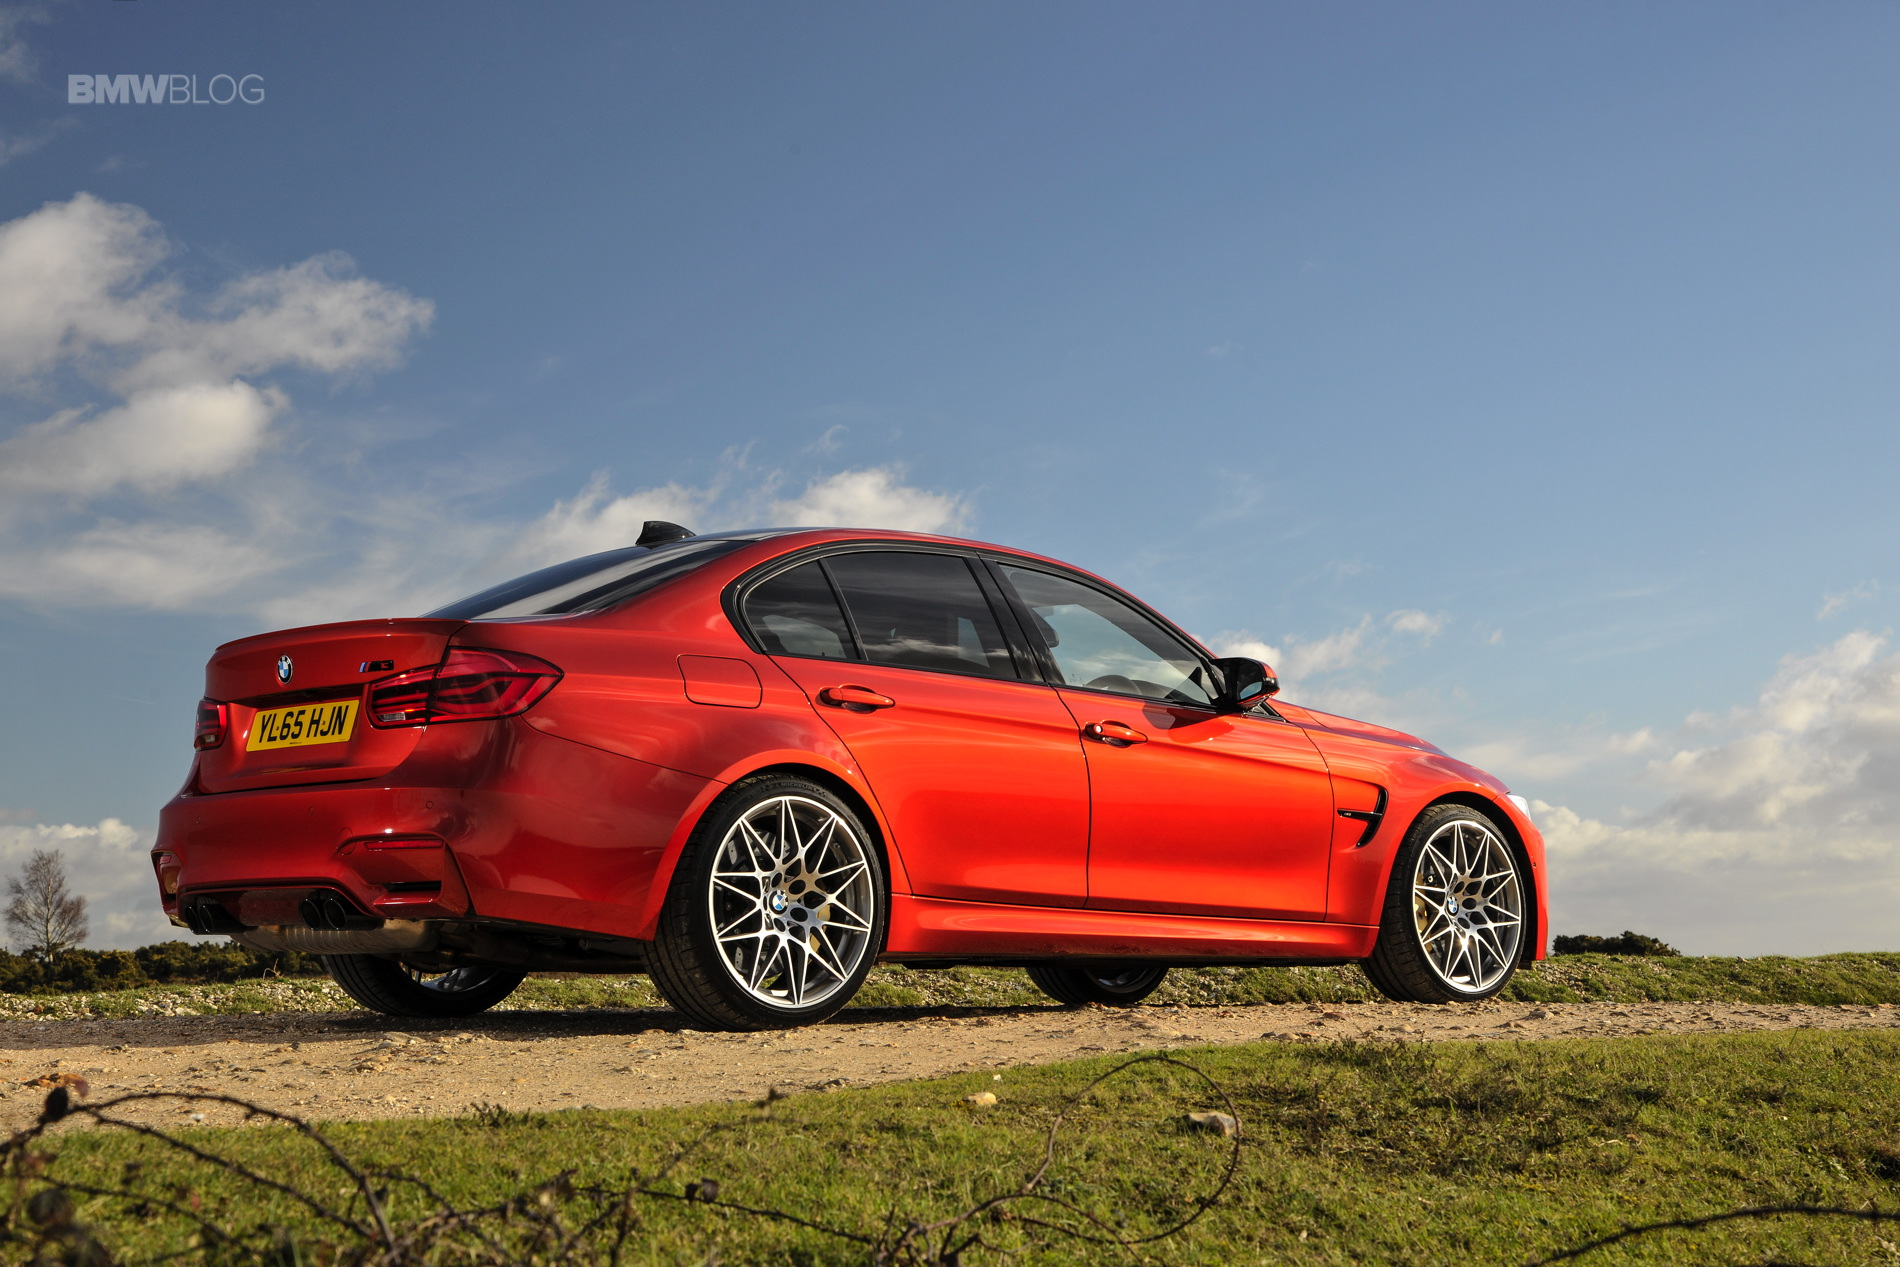 Bmw M3 Competition Package Wallpapers Vehicles Hq Bmw M3 Competition Package Pictures 4k Wallpapers 2019